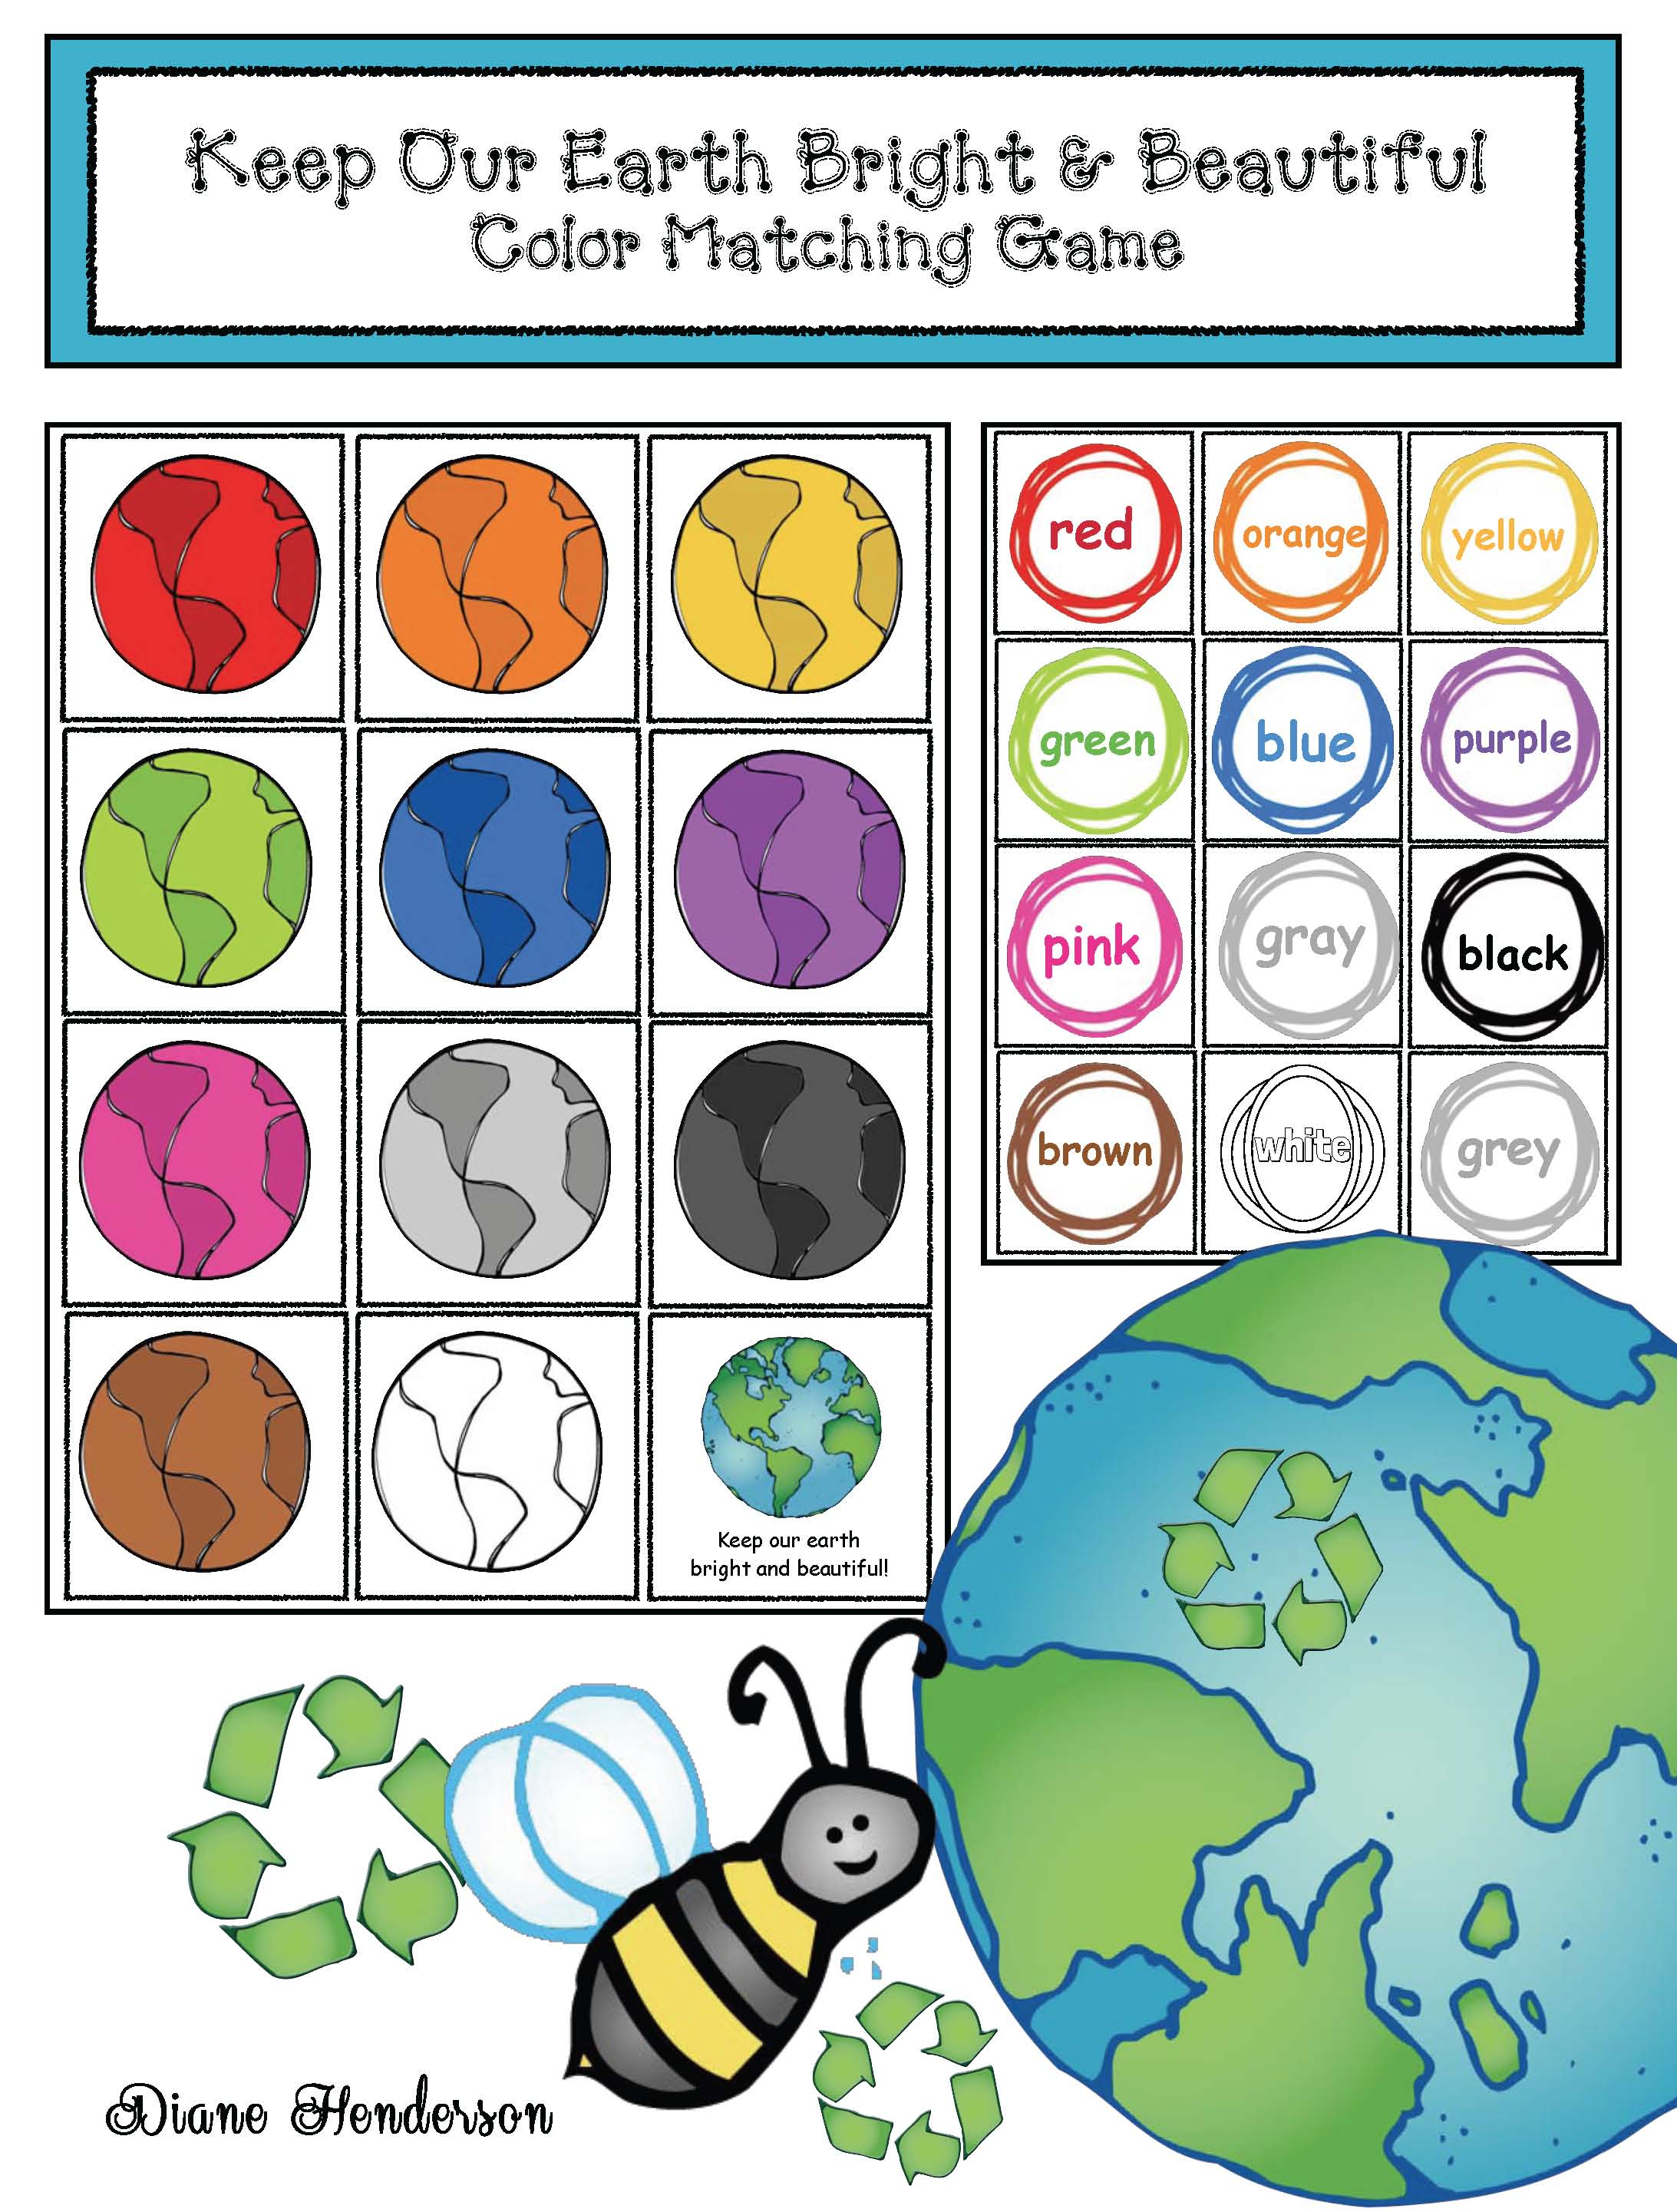 earth day activities, earth day crafts, telling time activities, telling time games, earth day games, earth day bulletin boards, earth day writing prompts